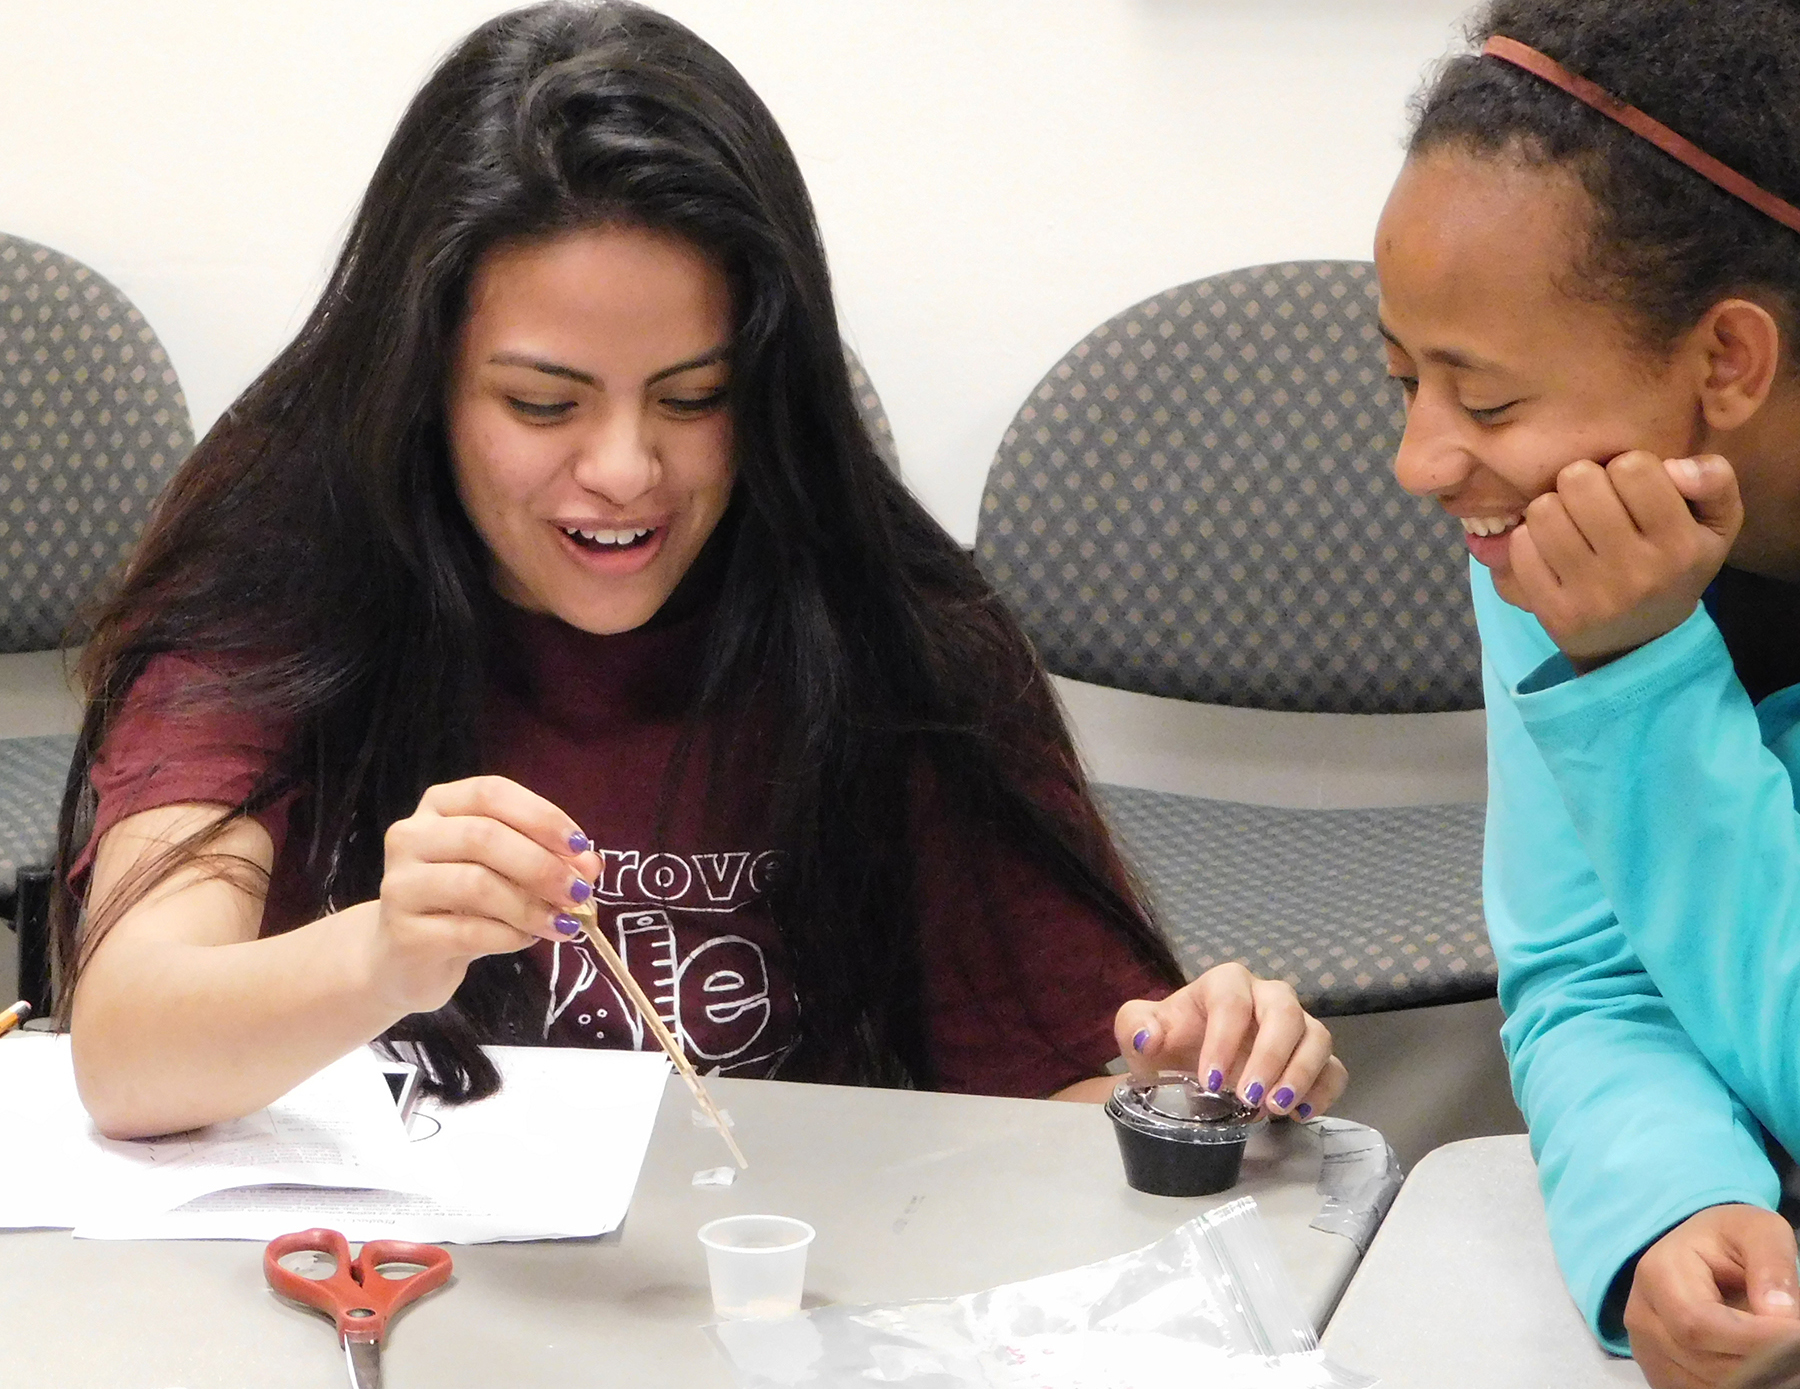 Students at high school challenge testing bioplastic film for starch